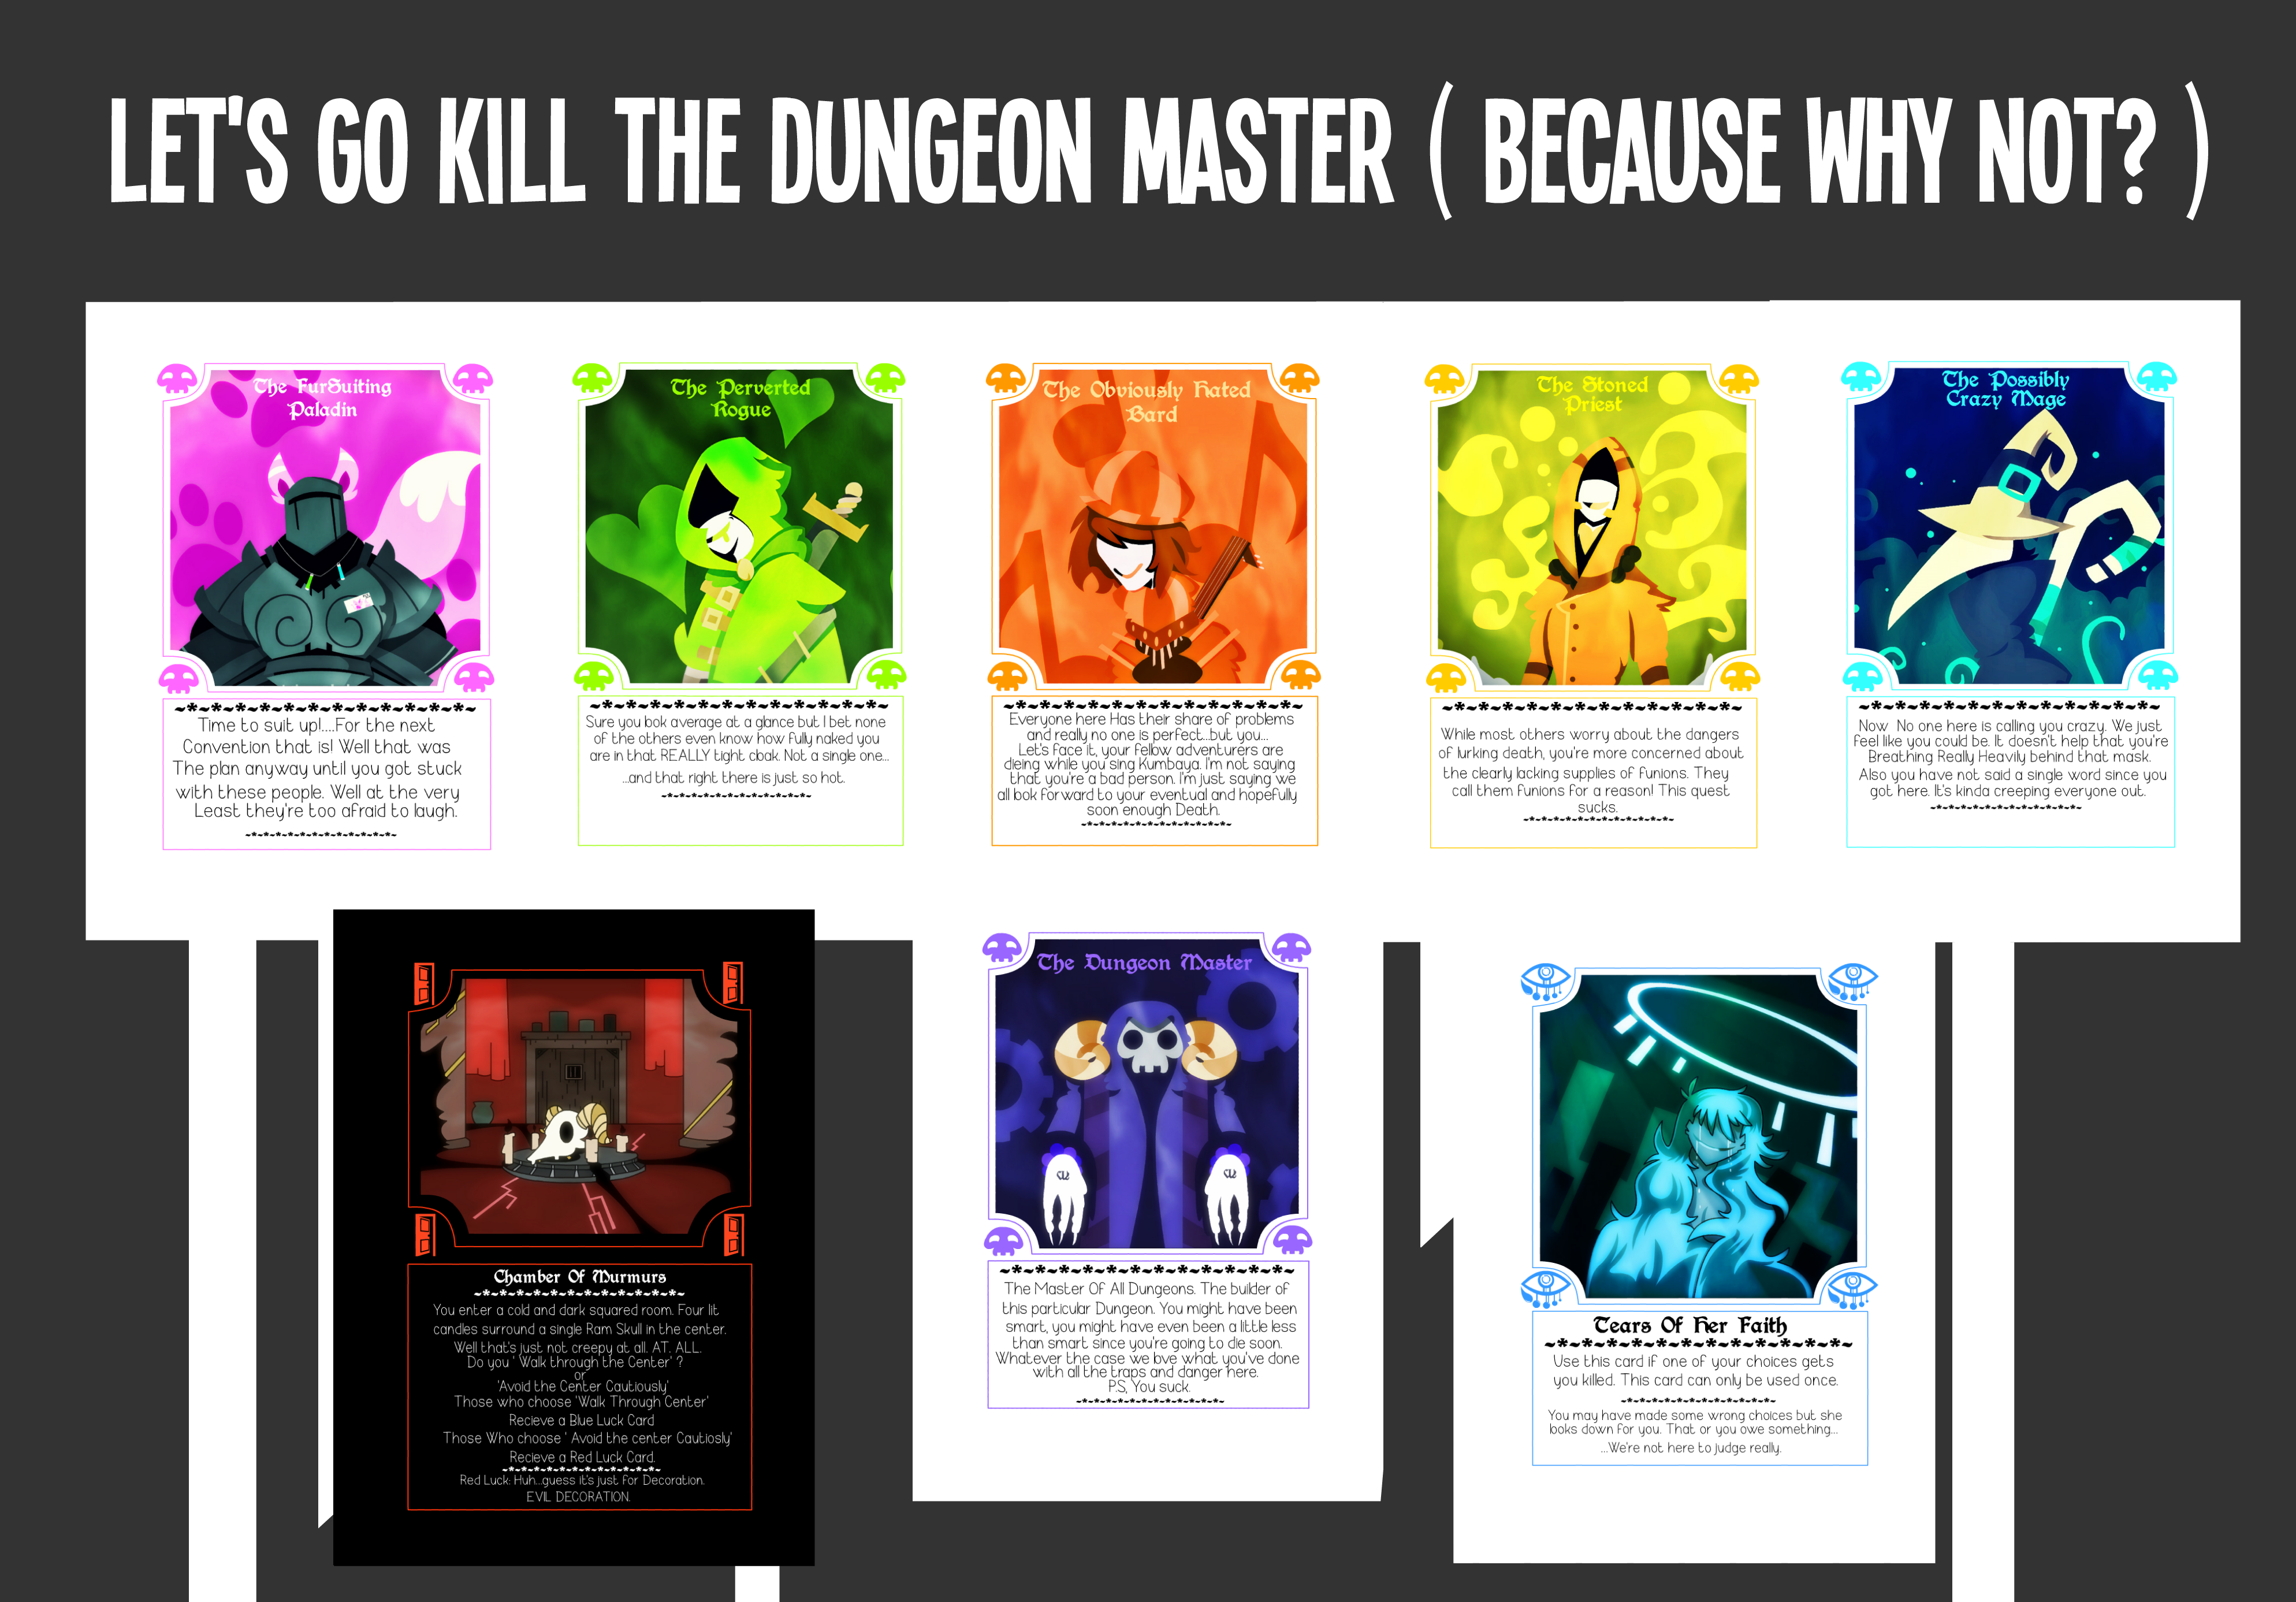 Let's kill the dungeon master